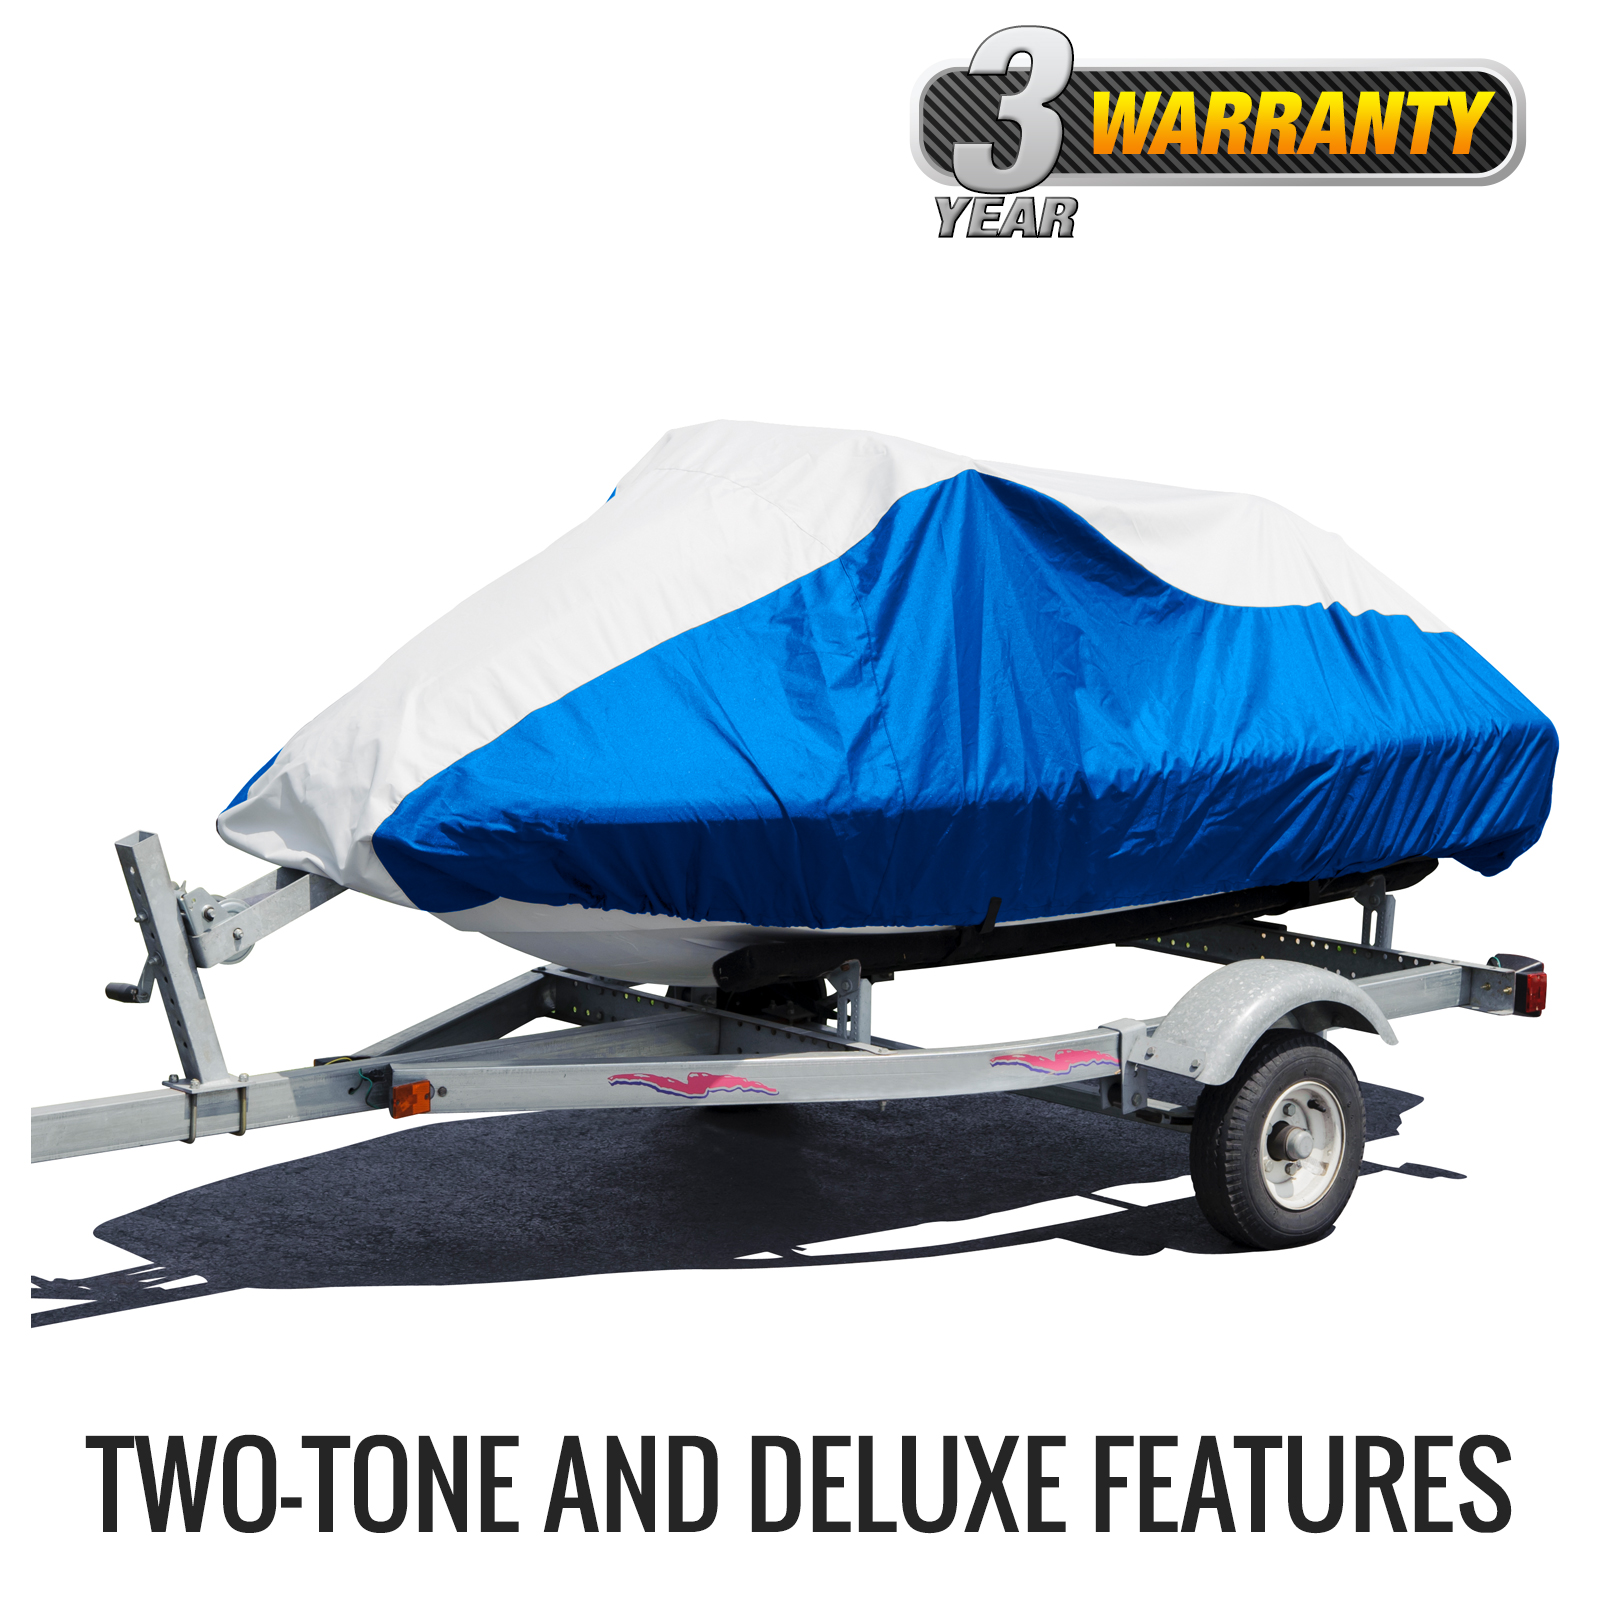 "Budge Deluxe 2 Stroke Jet Ski Cover, Size PW-1: 106"" to 115"" 2-Stroke by Budge Industries"